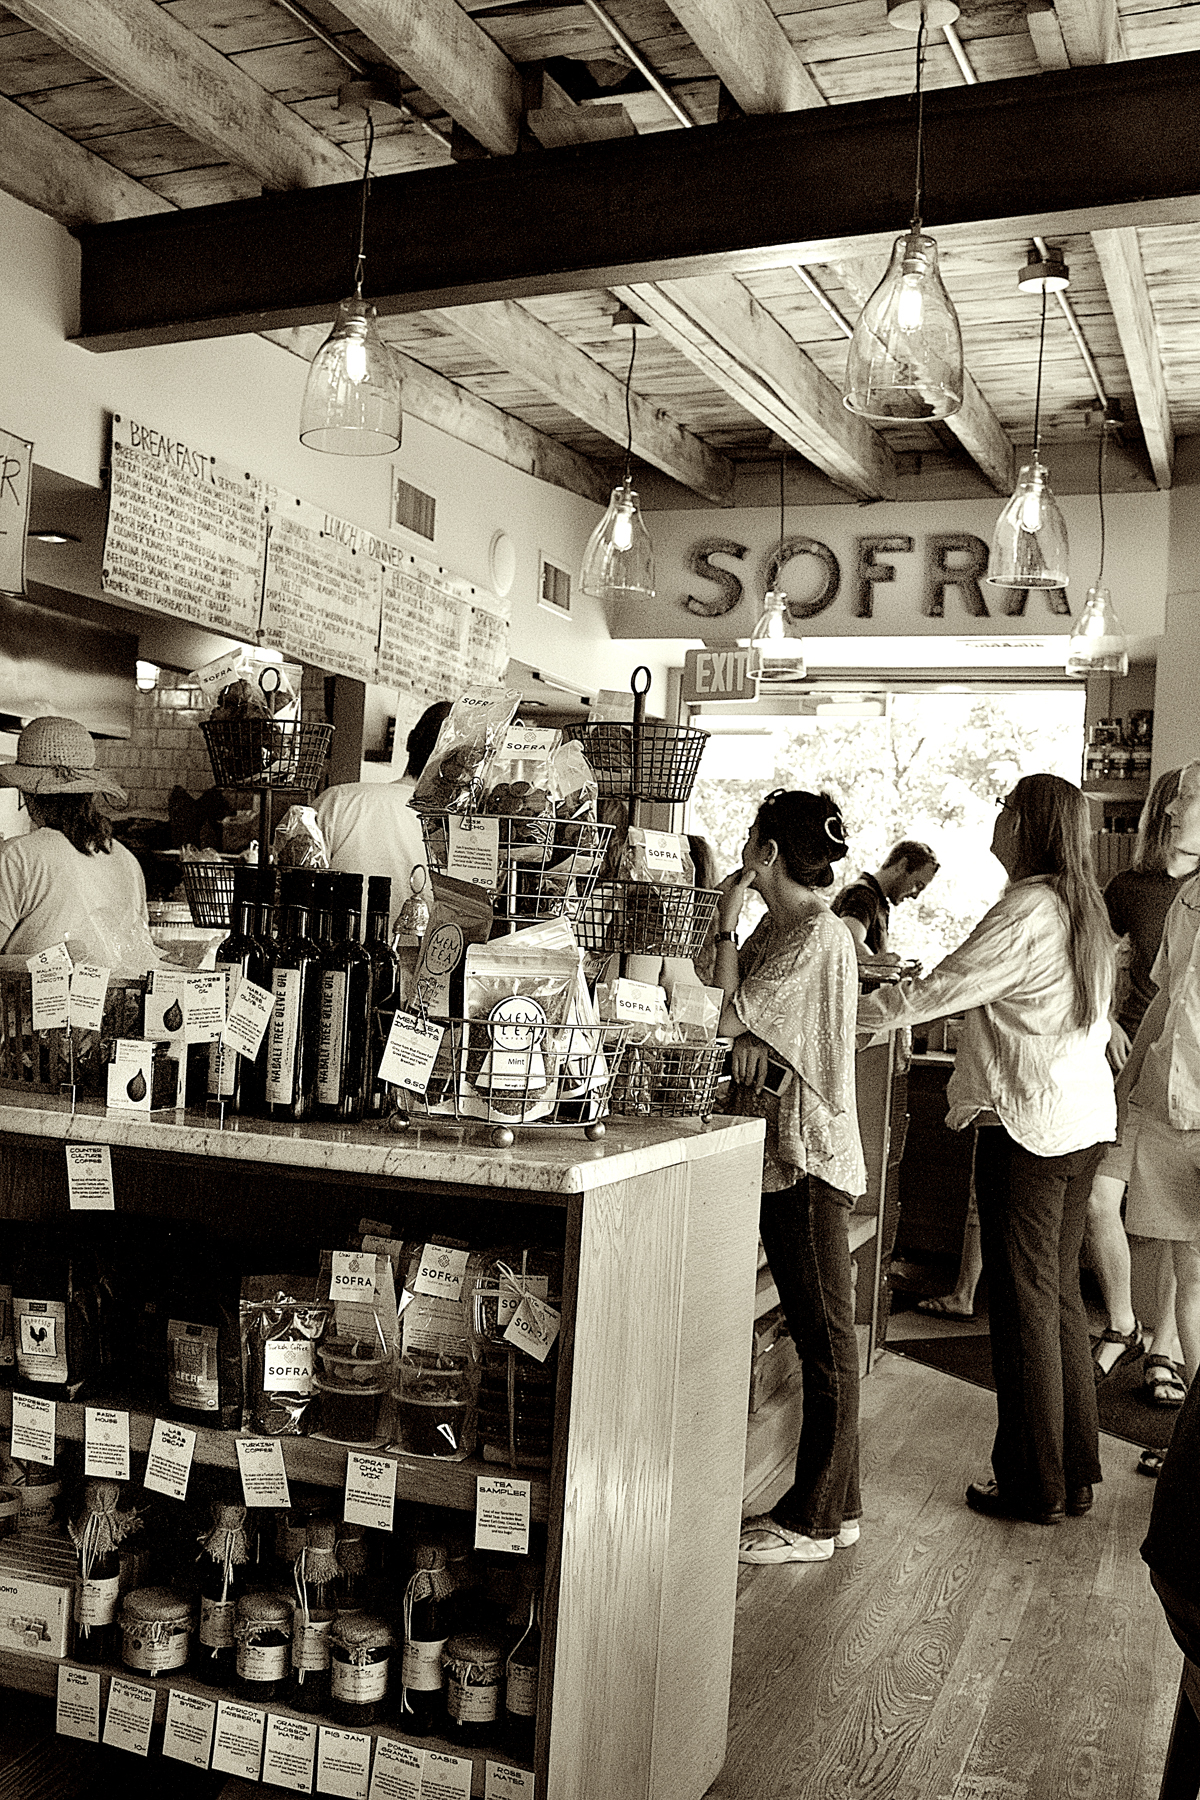 Figure 2 - Interior of the Sofra Bakery, Watertown, MA. (c) DE Wolf 2013.